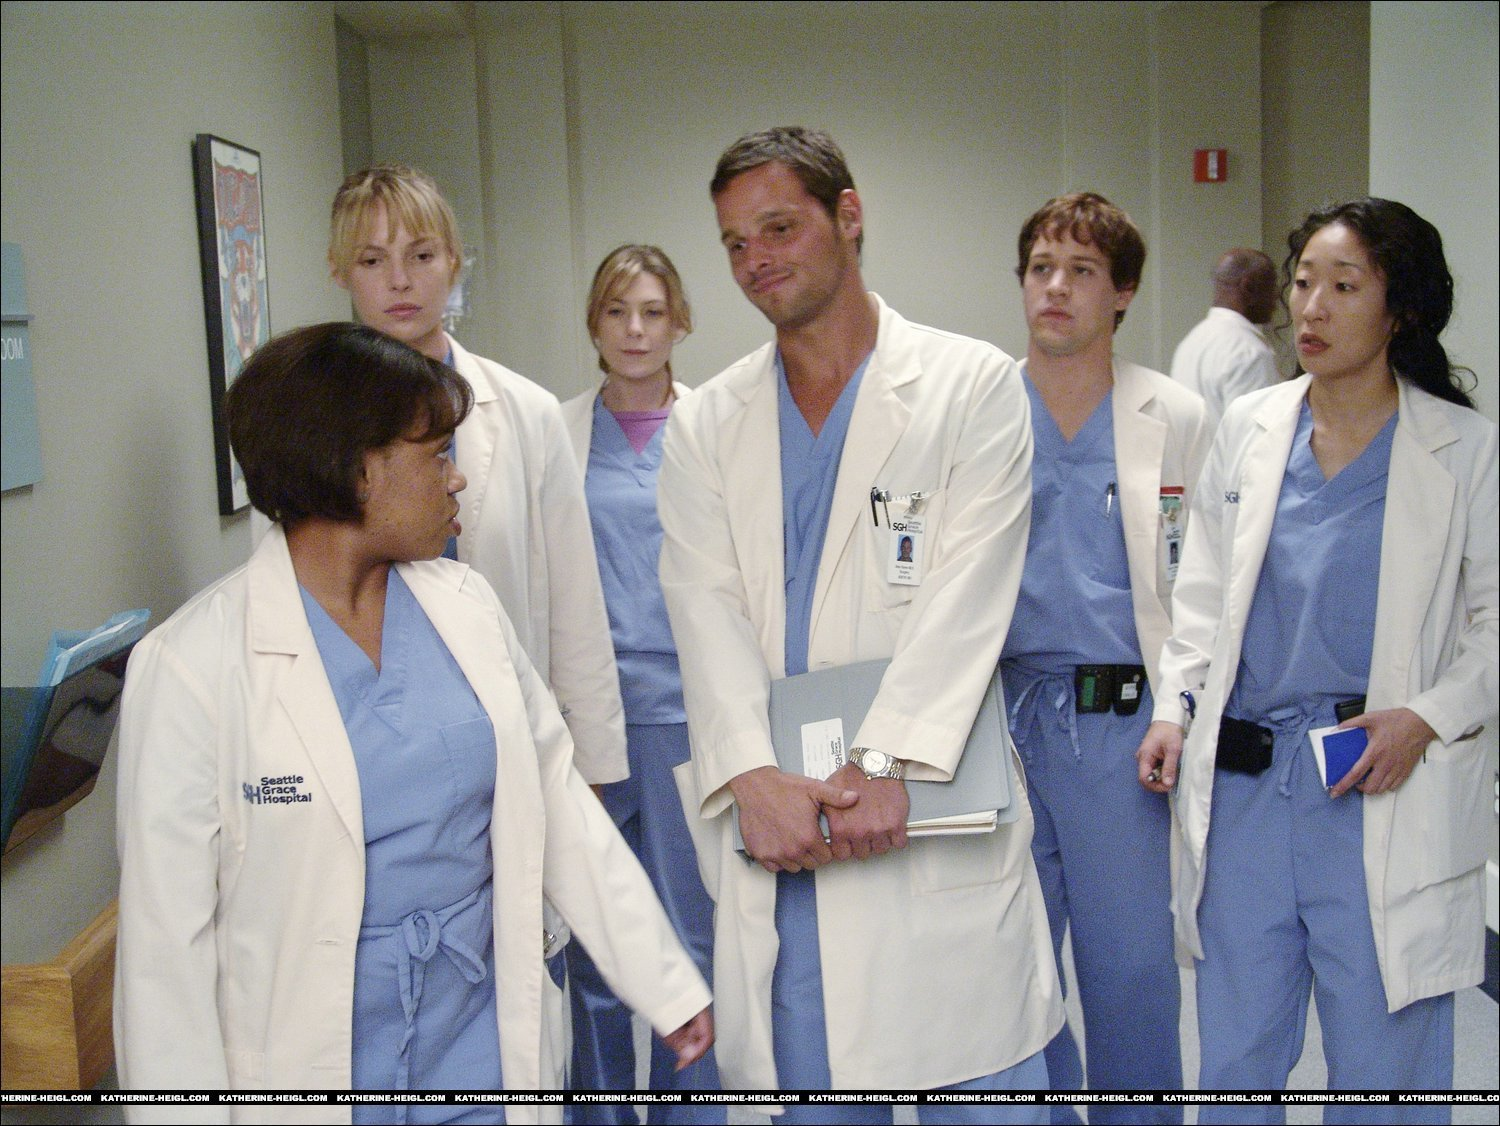 Greys anatomy - season 1 - George & Izzie Photo (2256777) - Fanpop